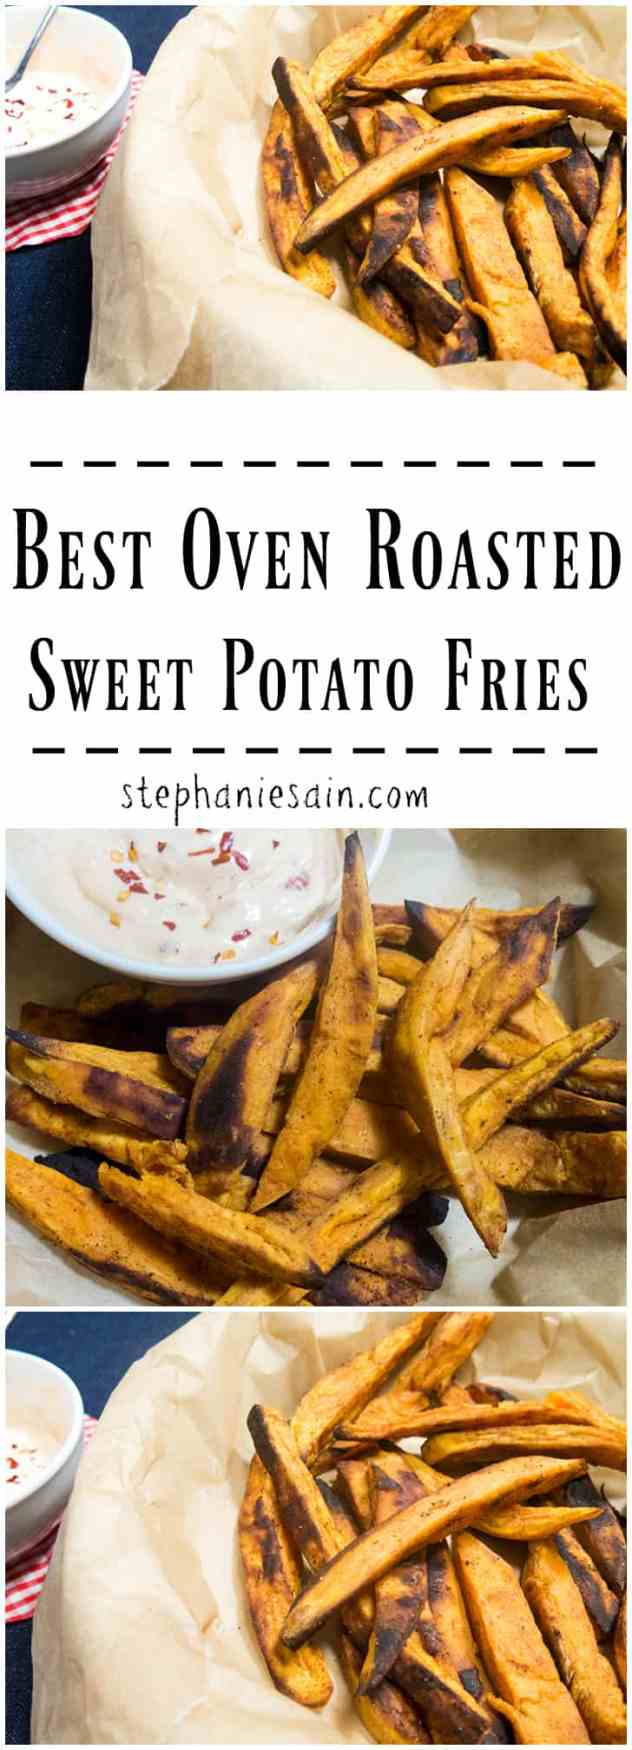 Best Oven Roasted Sweet Potato Fries are a healthier tasty option for fries. They are the perfect blend of sweet and savory. Vegetarian and Gluten Free.